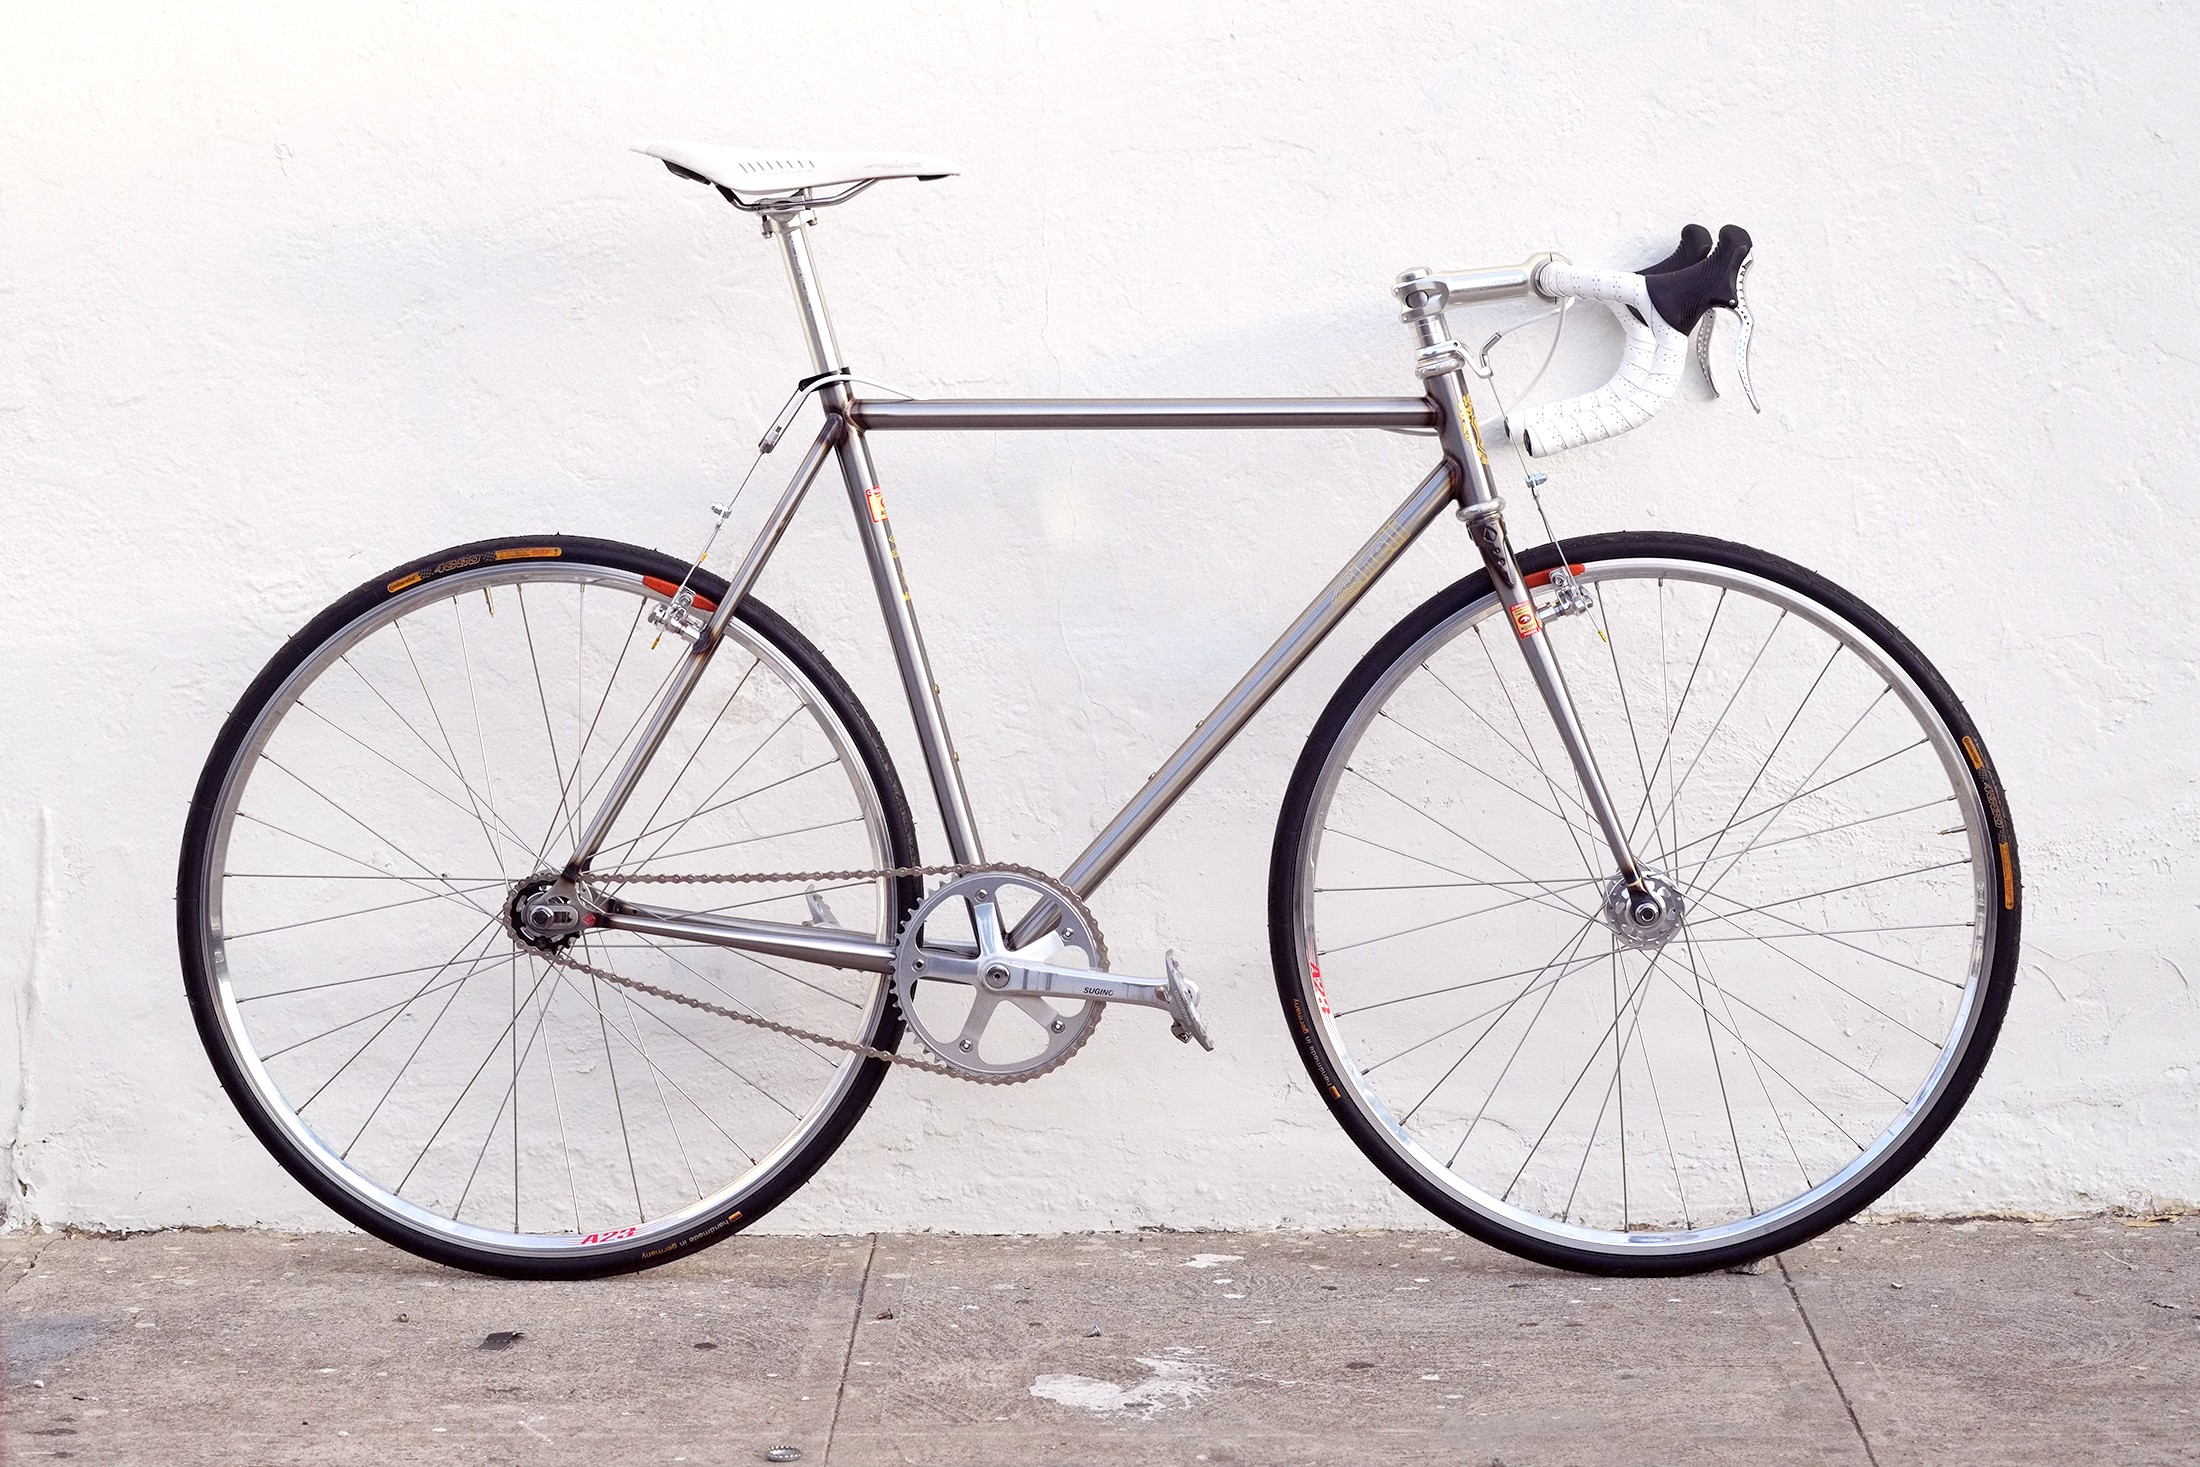 Dating cinelli frame